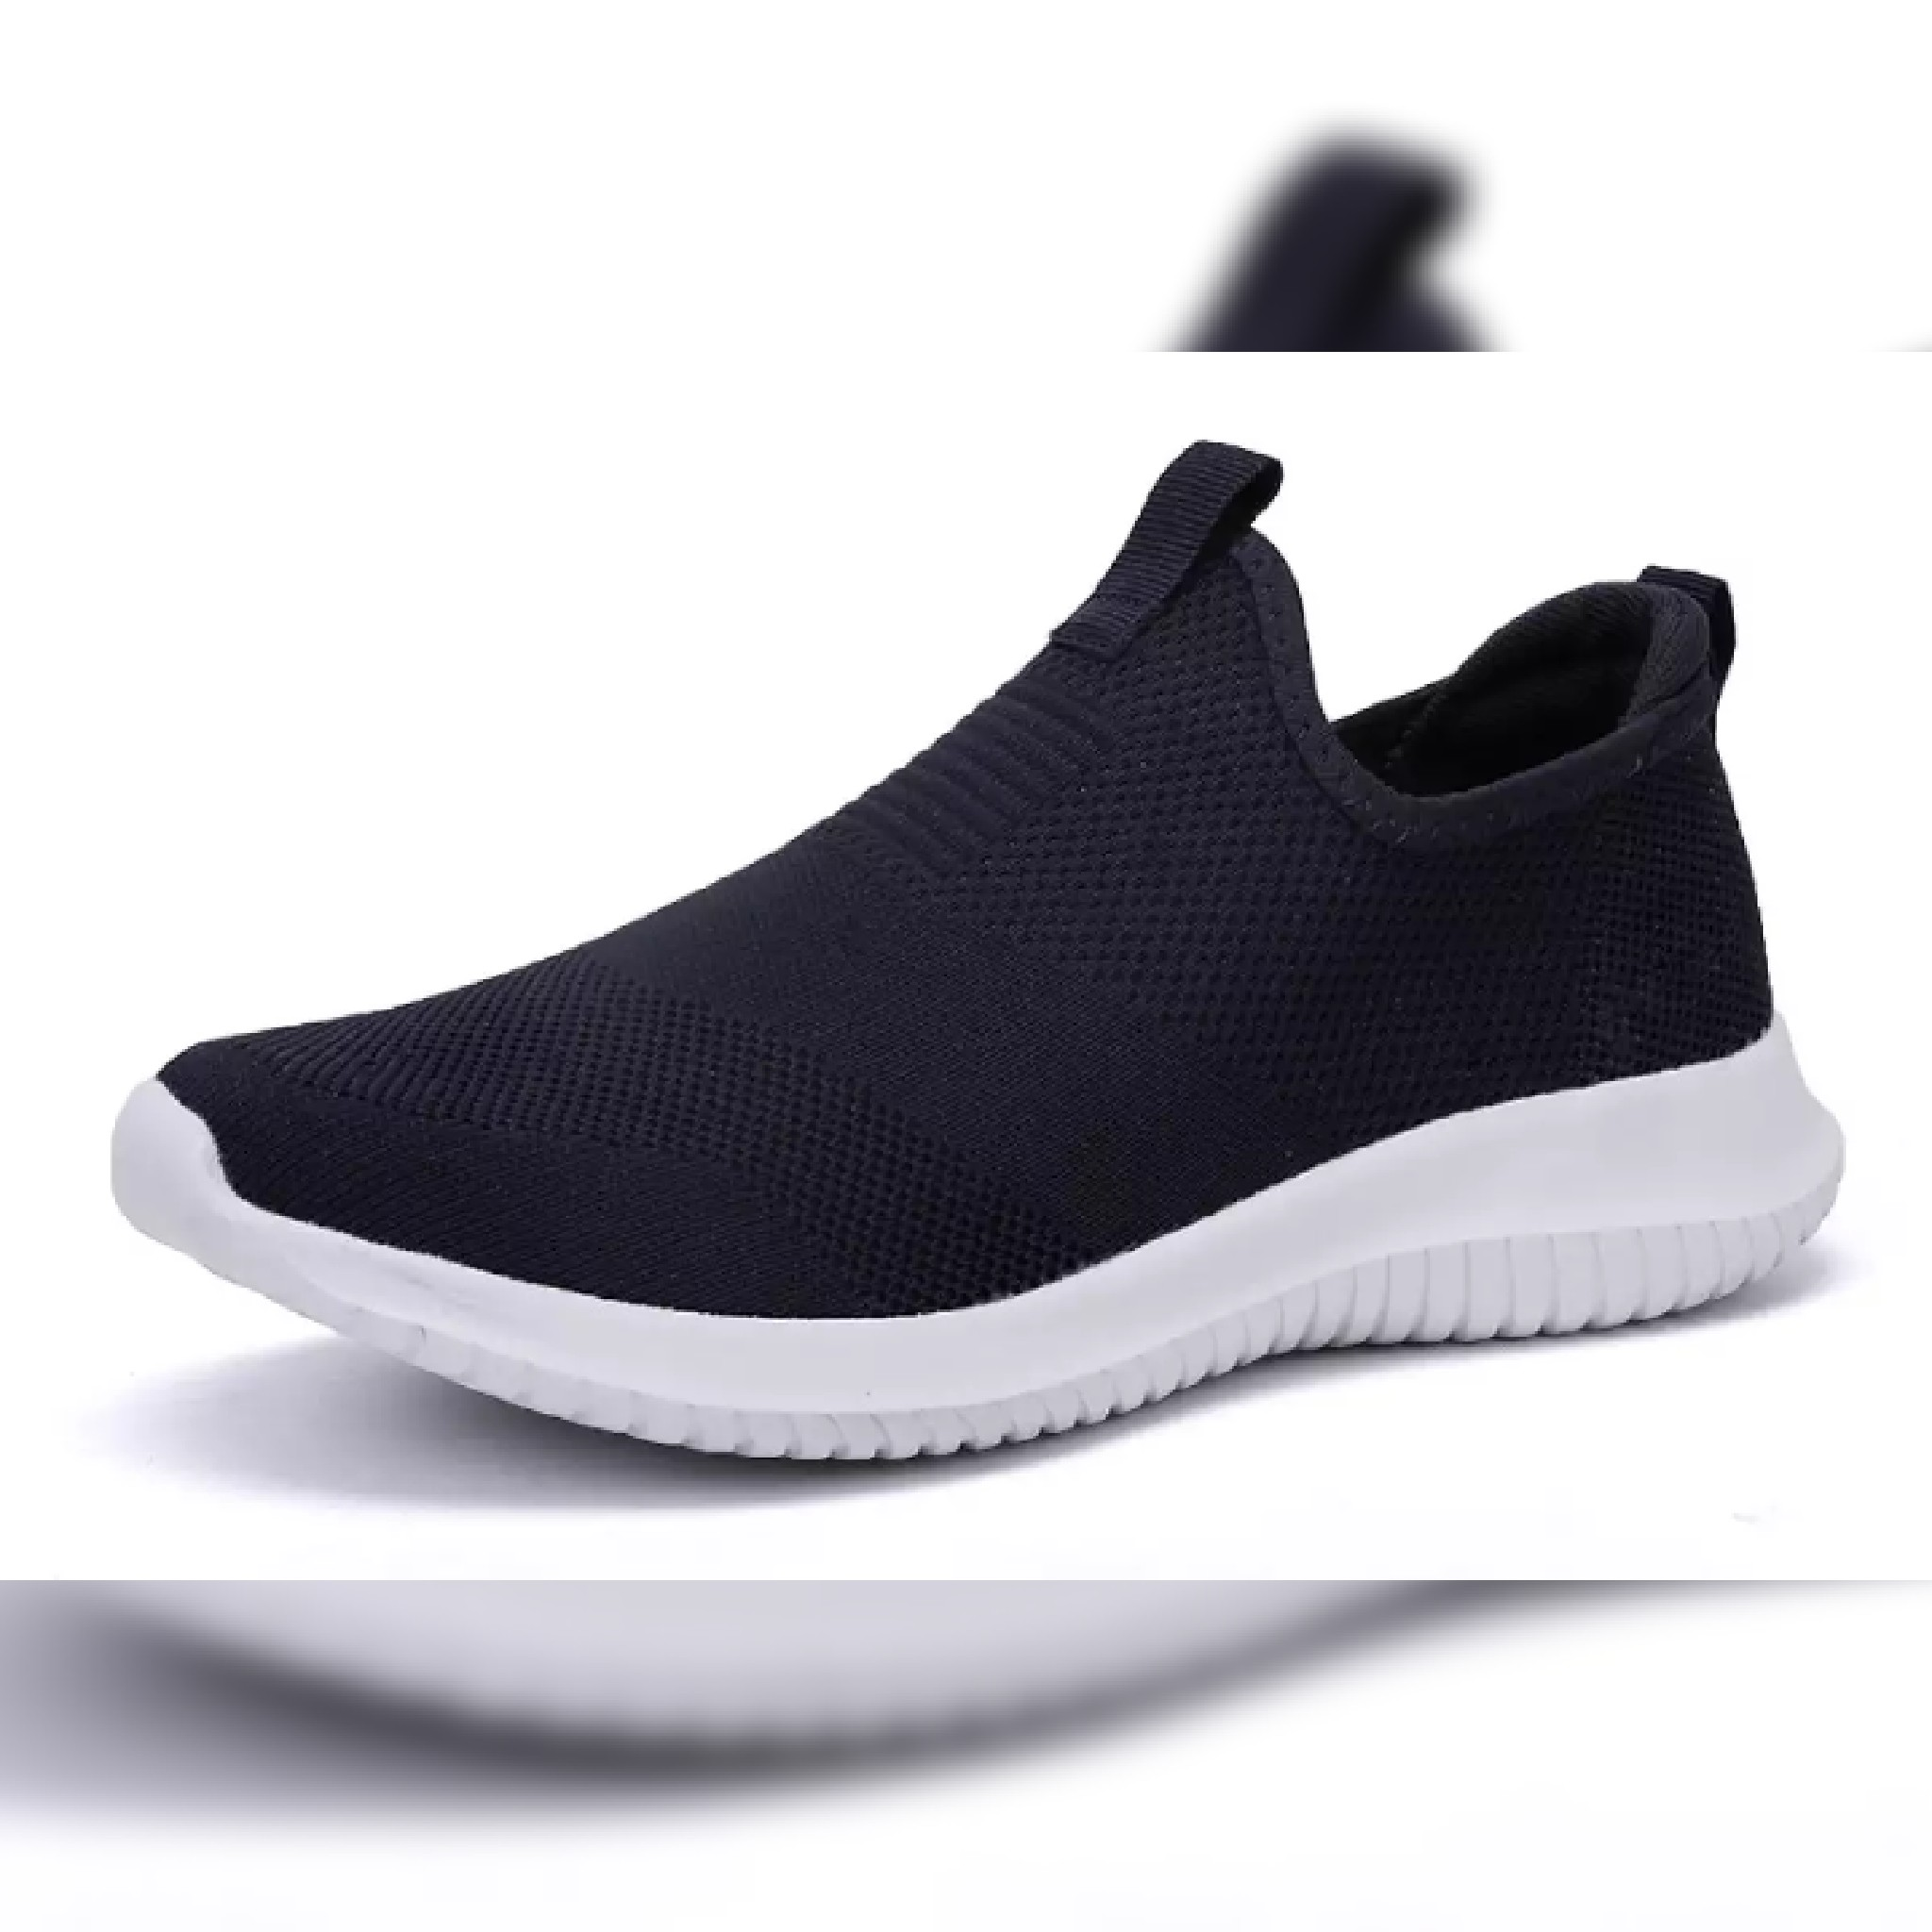 Men's shoes canvas shoes/ flat fashion men sneakers breathable sports casual board shoes trendy shoes sneakers